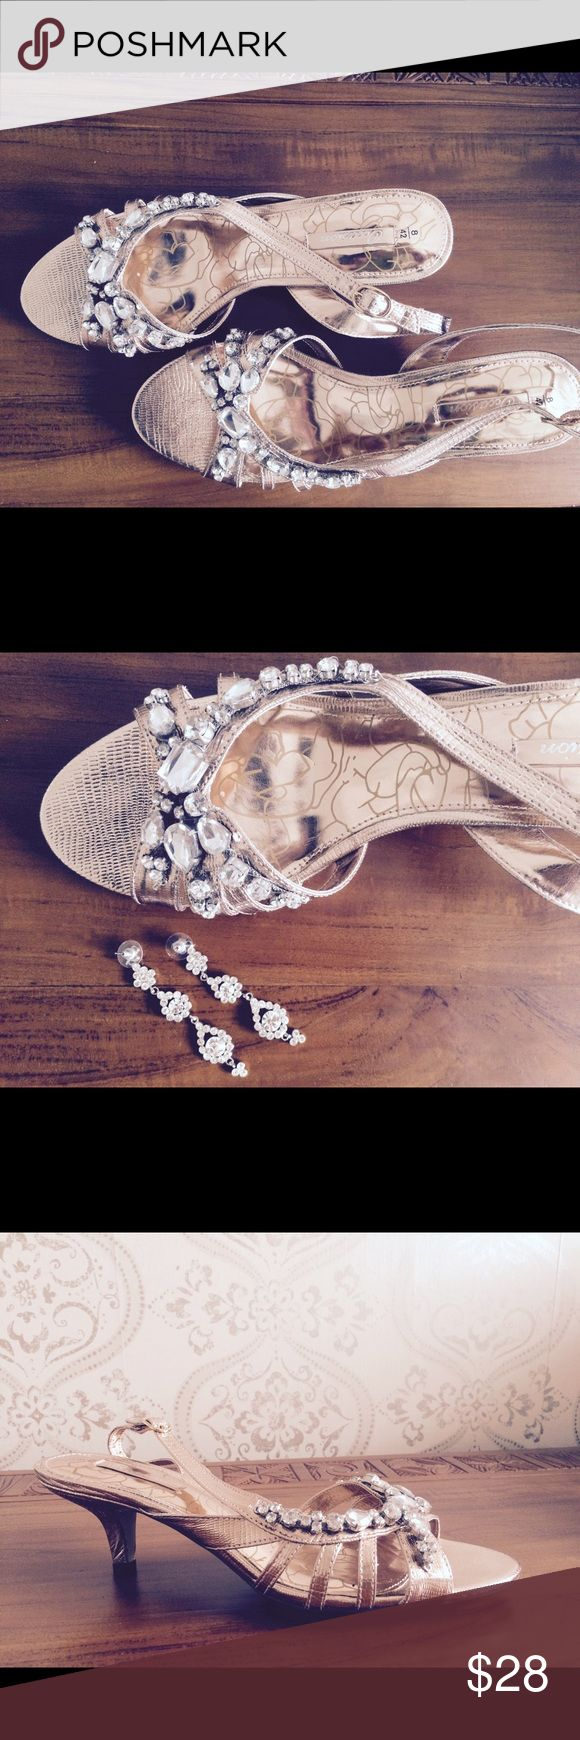 NWT. Rose gold evening shoes with diamontes Rose gold shoes from British label Next. Great for a special evening out where you want your shoes to make an impact! Not worn and new with labels. Next Shoes Heels